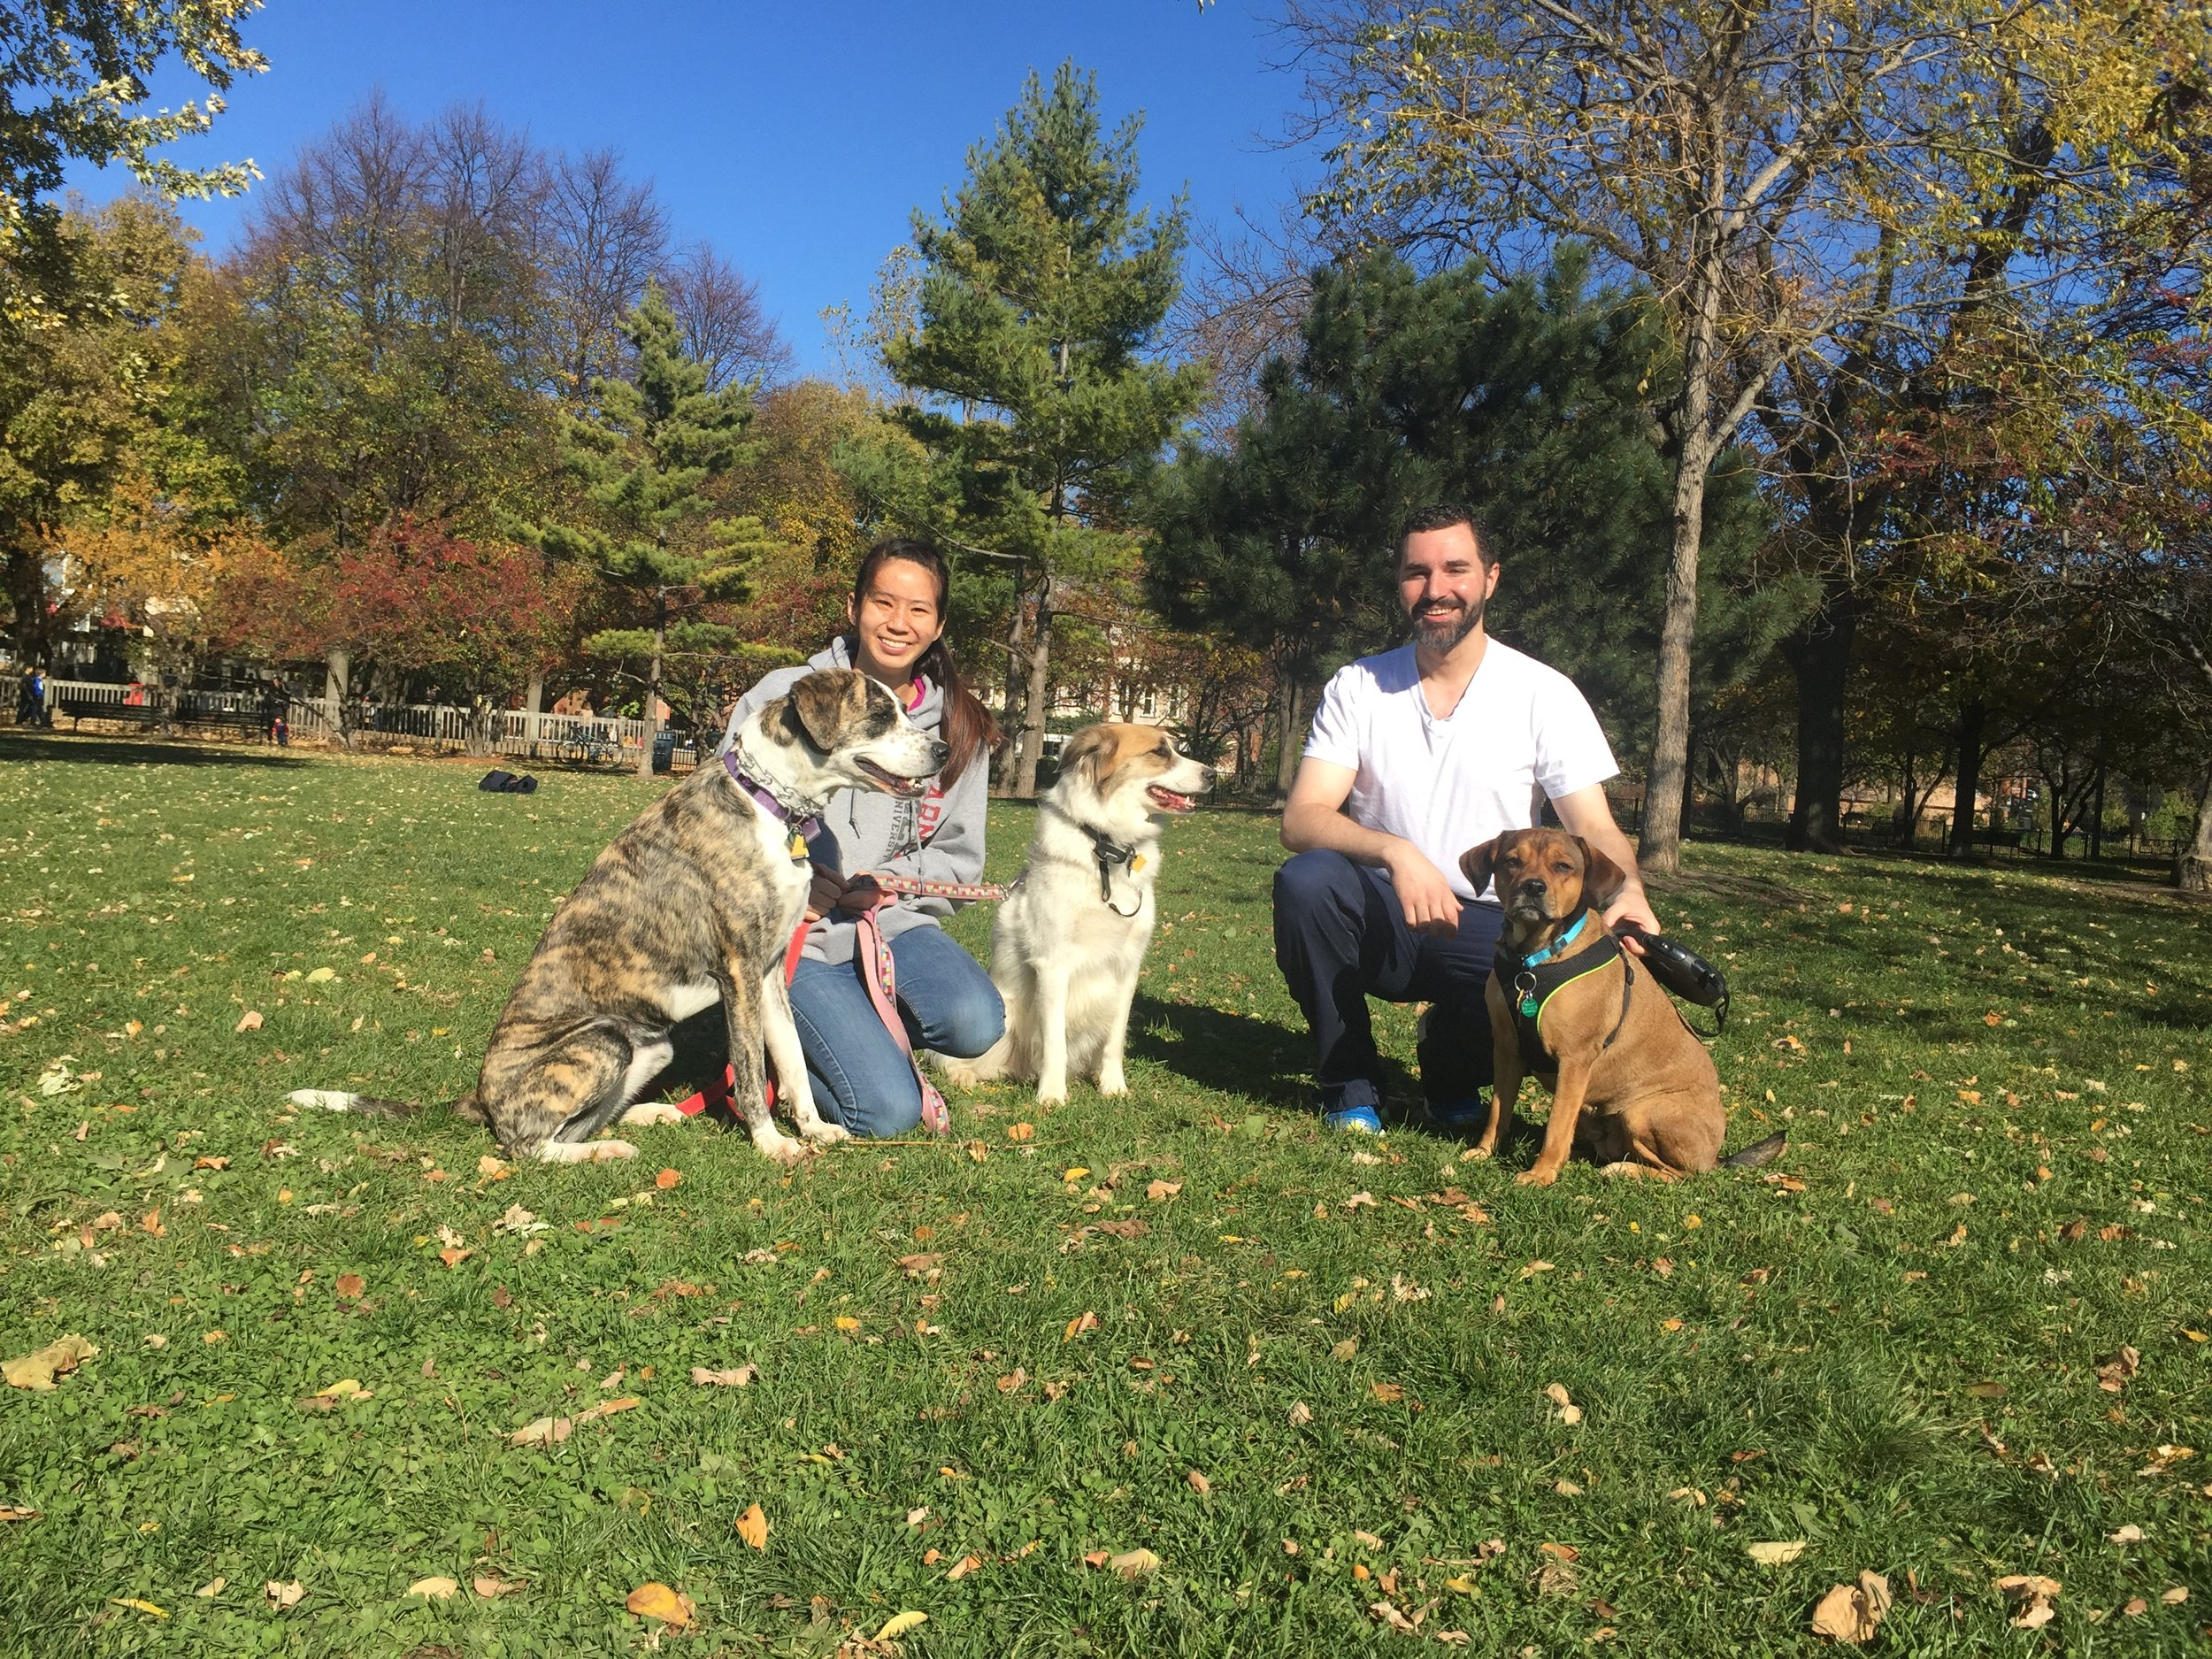 Weekend CBF students TIffany Yang '19 and Andrew Kerosky '19 take in the CBF football game with their dogs on Nov. 13.